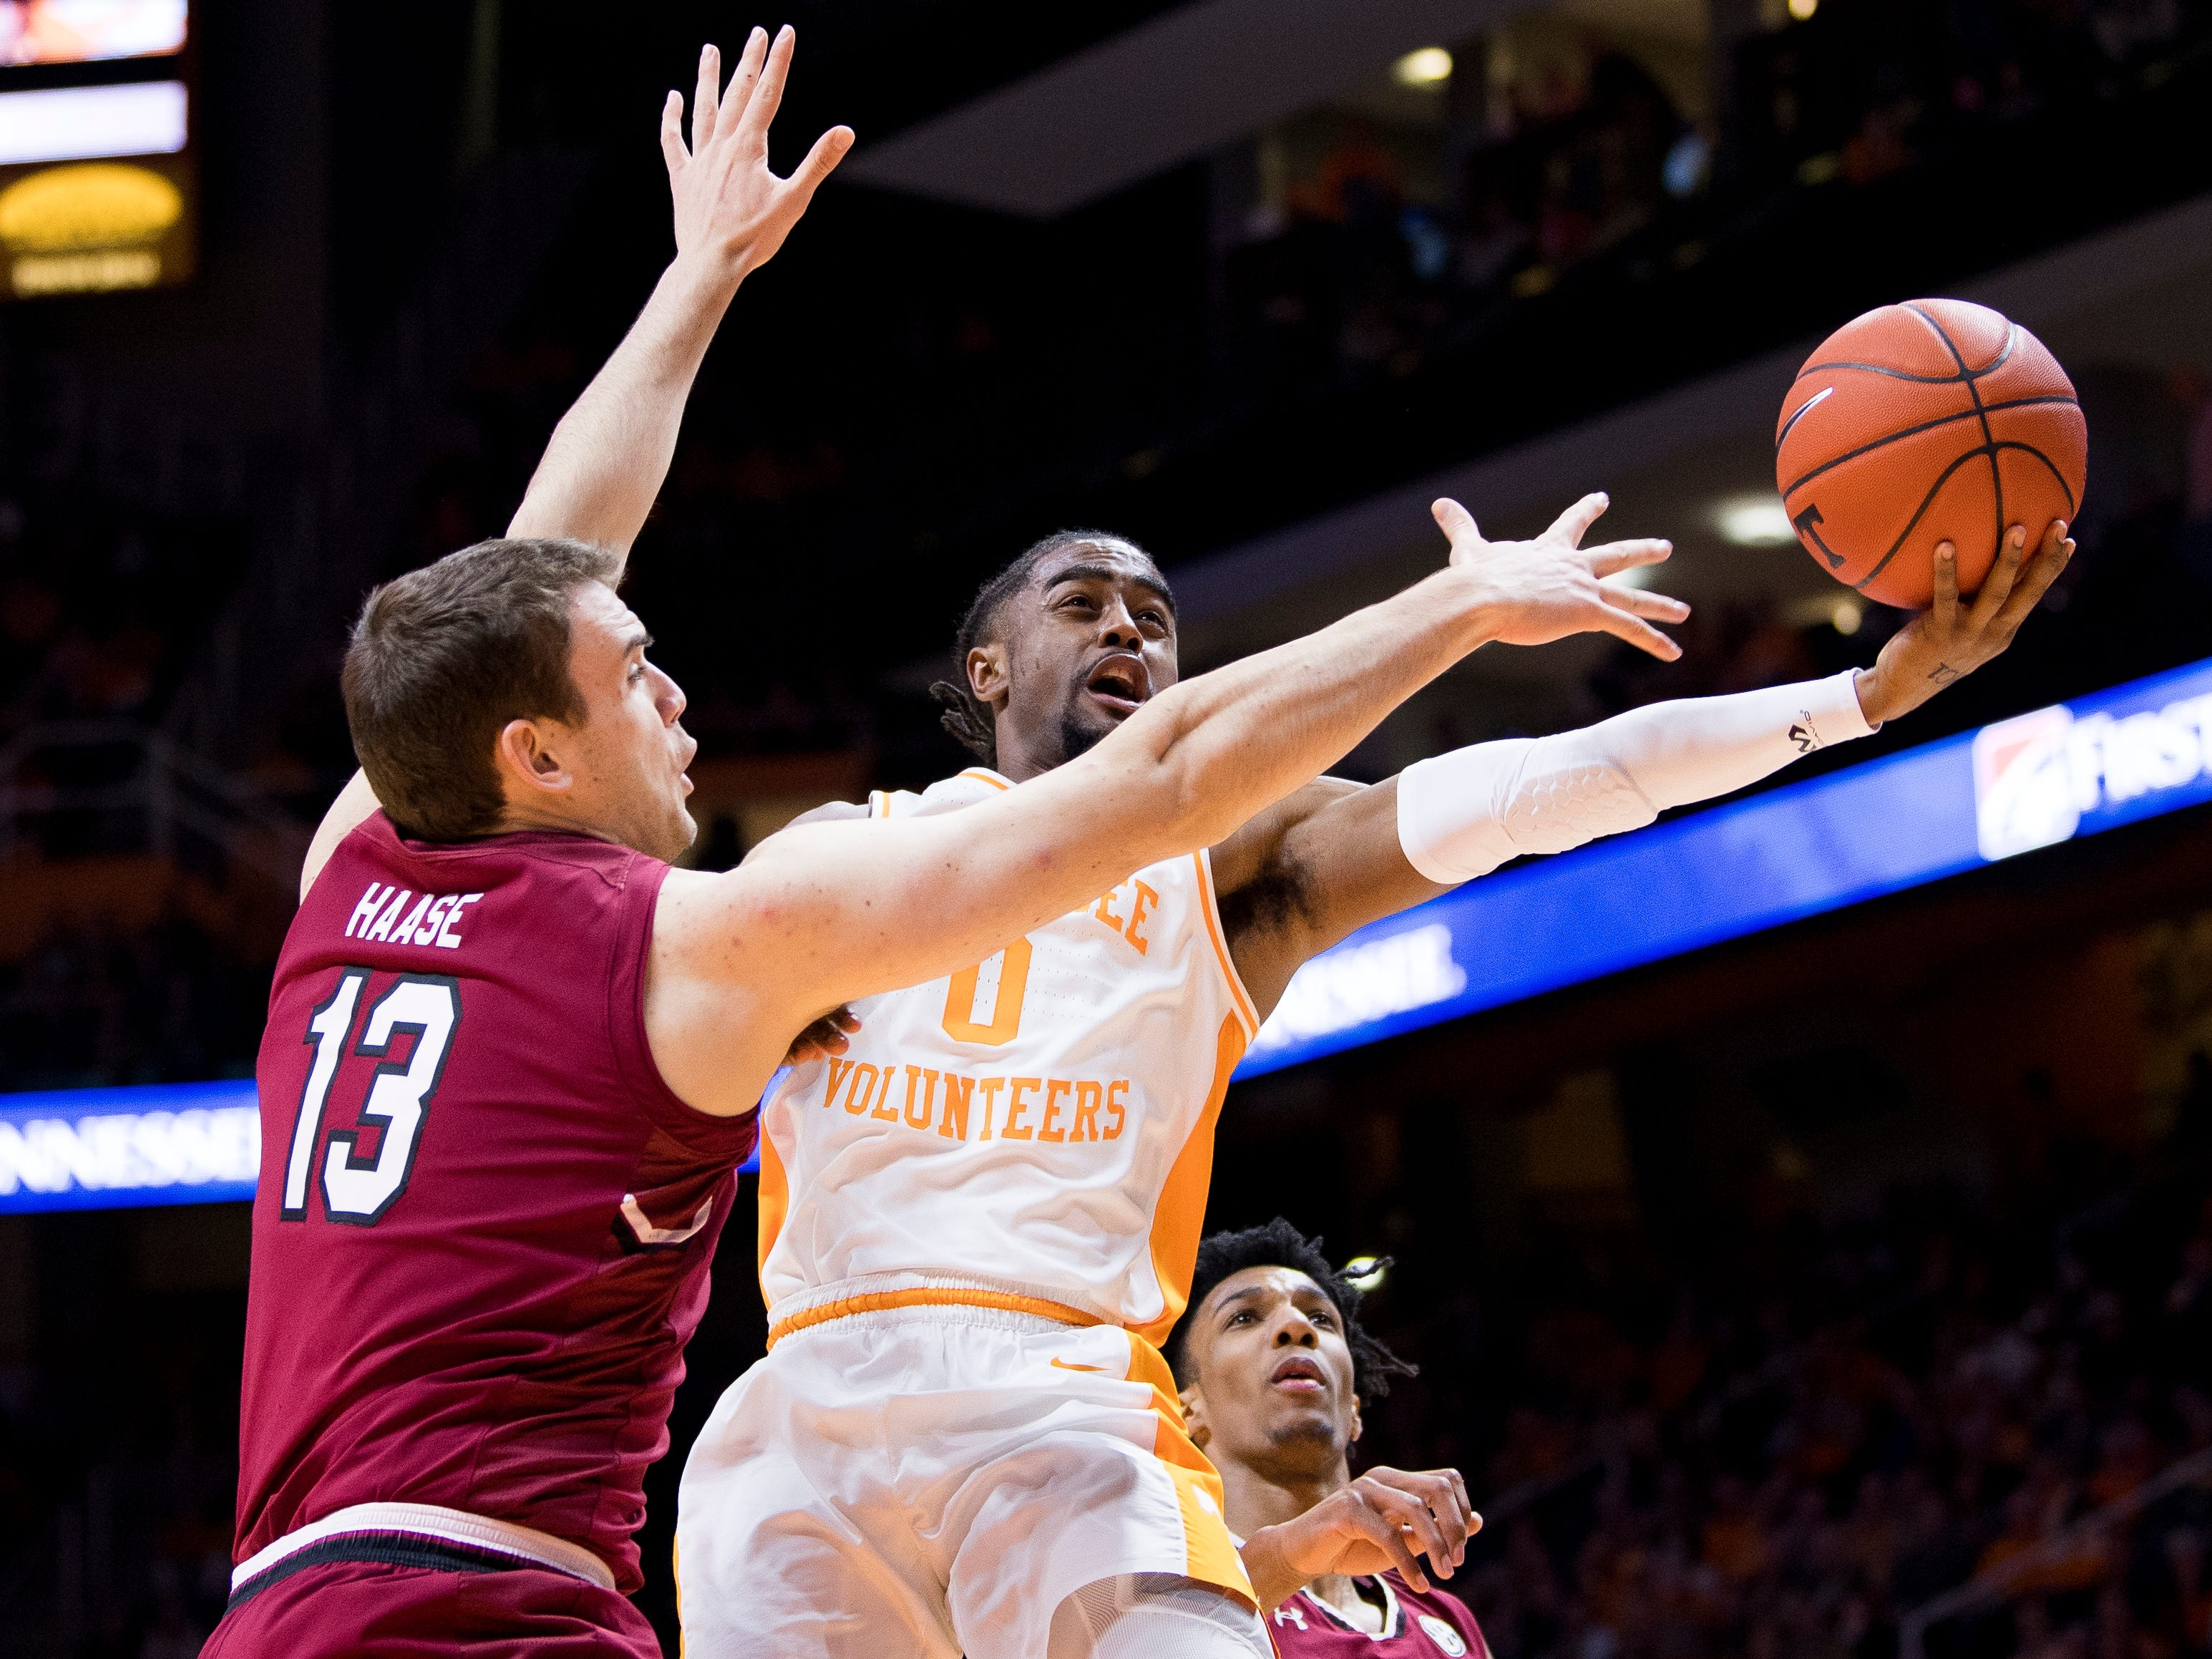 Tennessee guard Jordan Bone (0) attempts a shot past South Carolina forward Felipe Haase (13) during Tennessee's home SEC game against South Carolina at Thompson-Boling Arena in Knoxville on Wednesday, February 13, 2019.